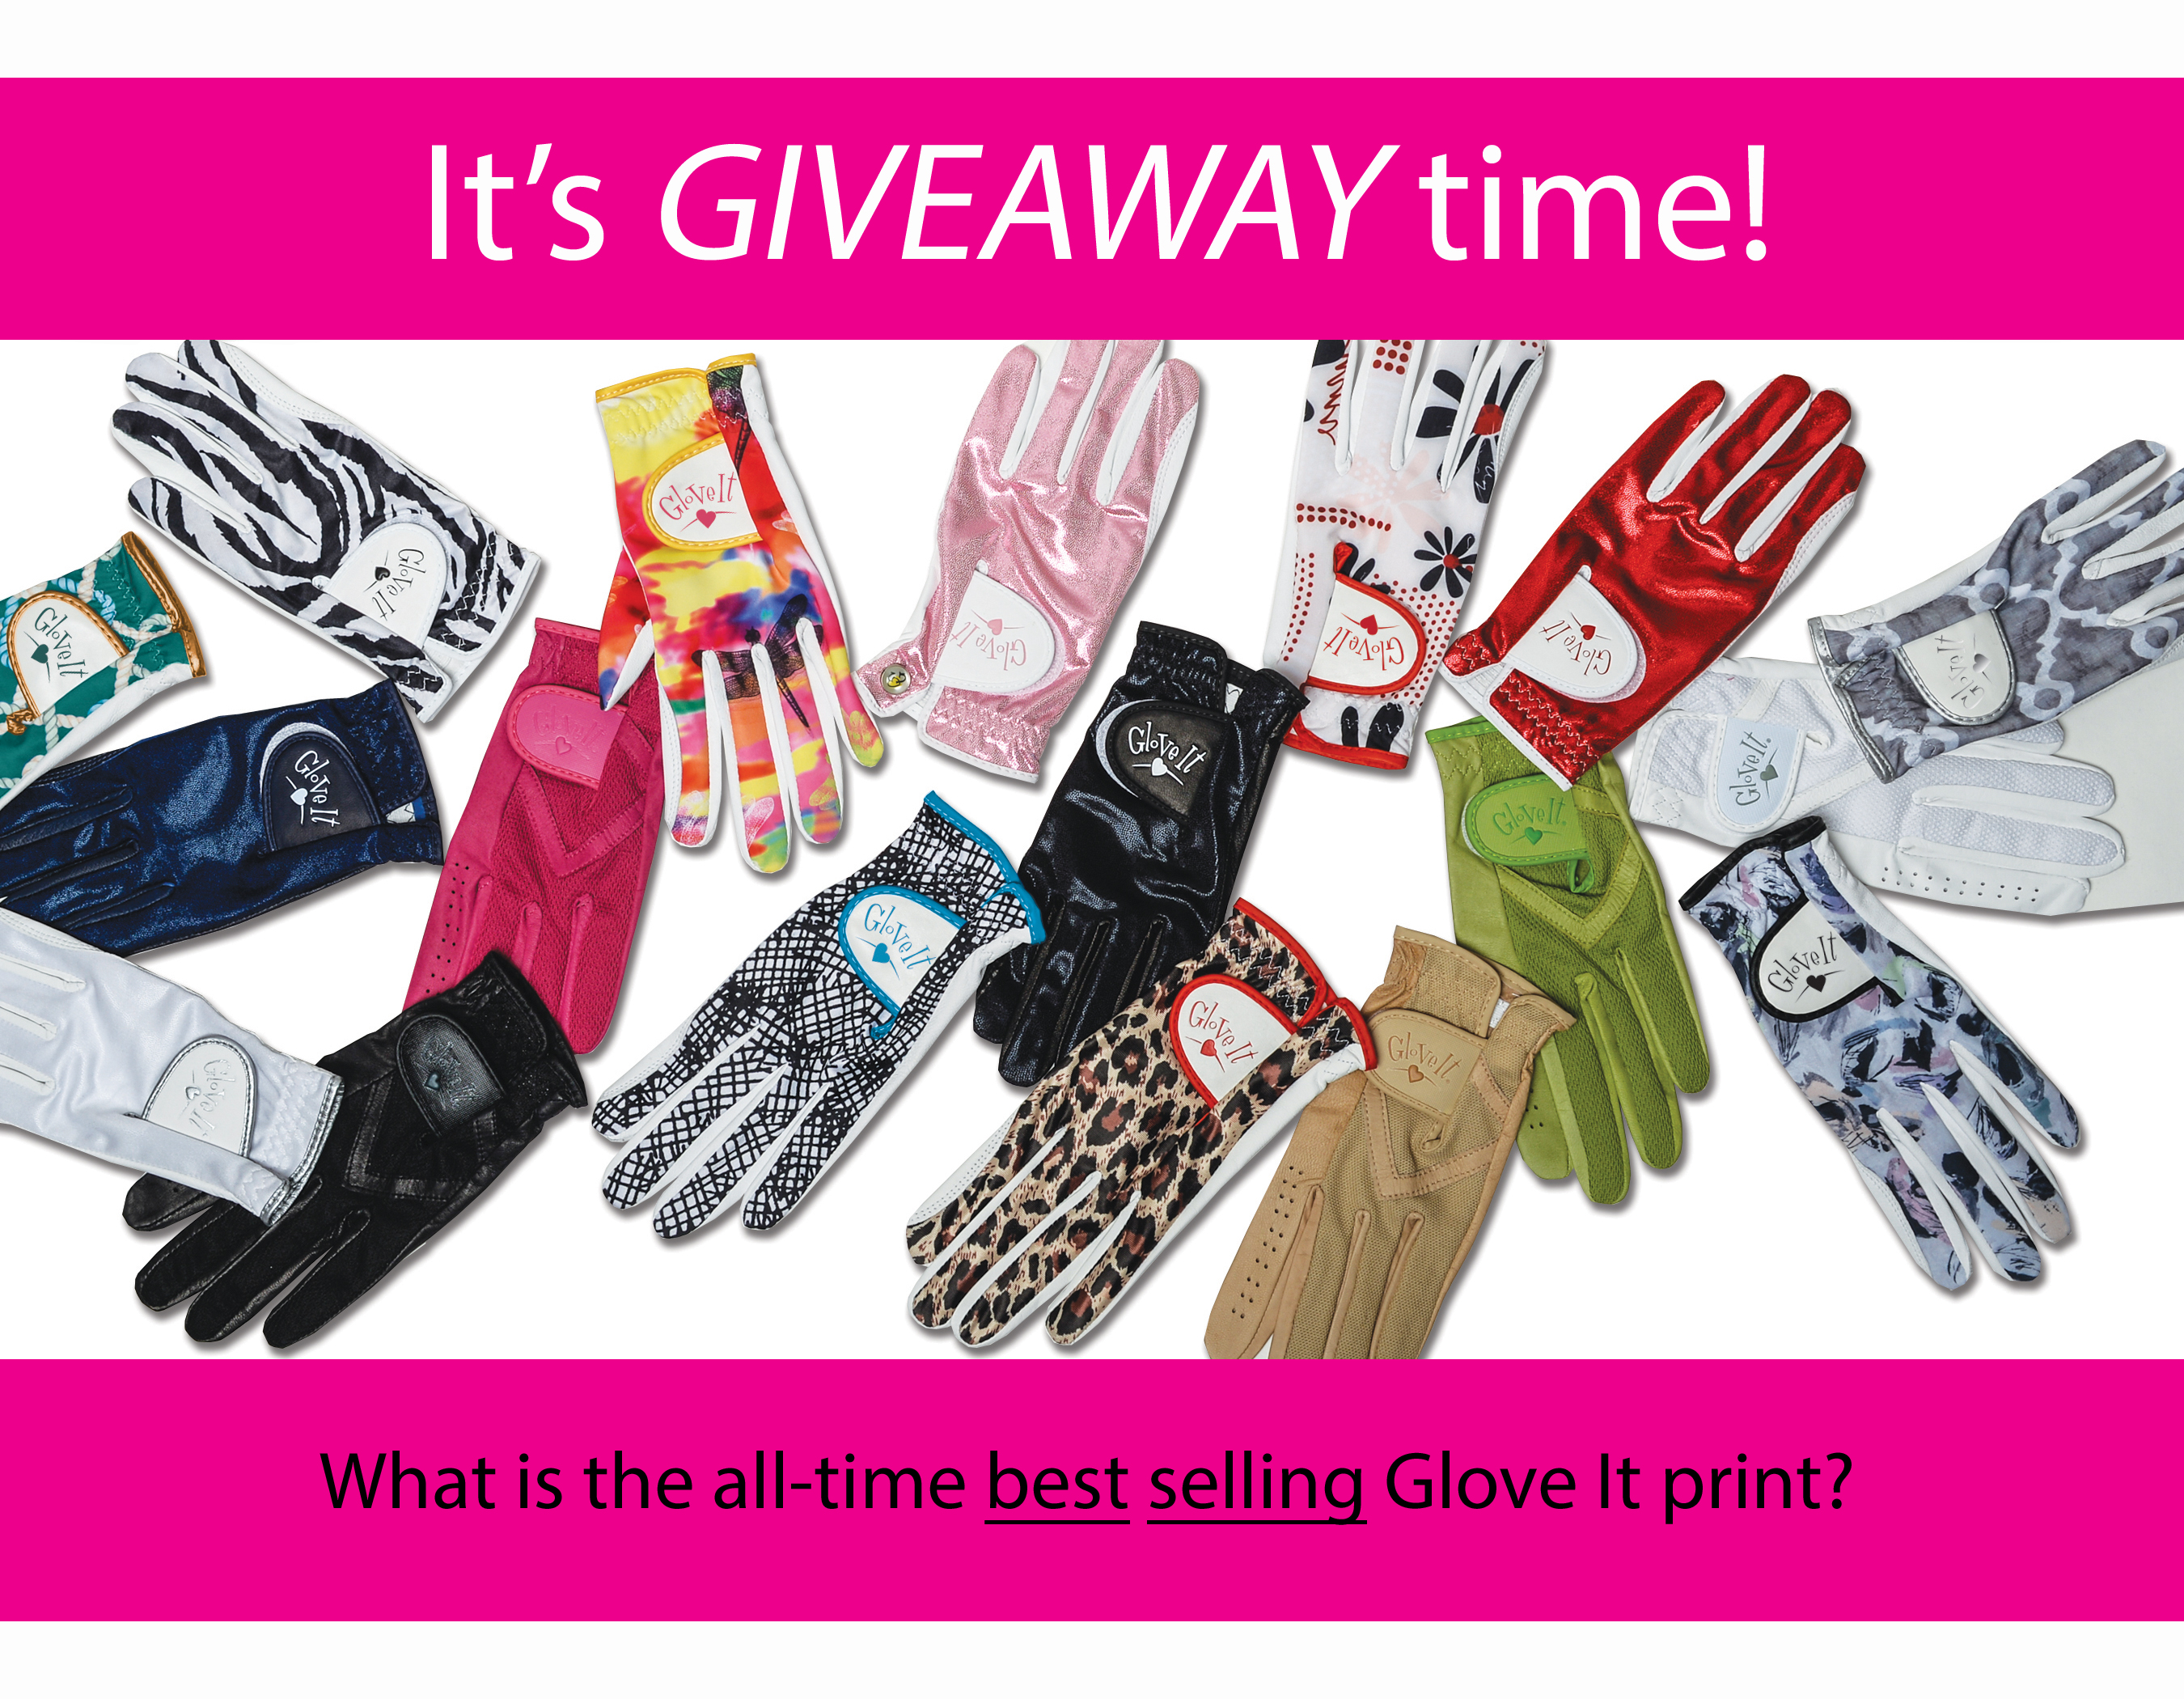 https://www.pinkgolftees.com/brands/Glove-It.html